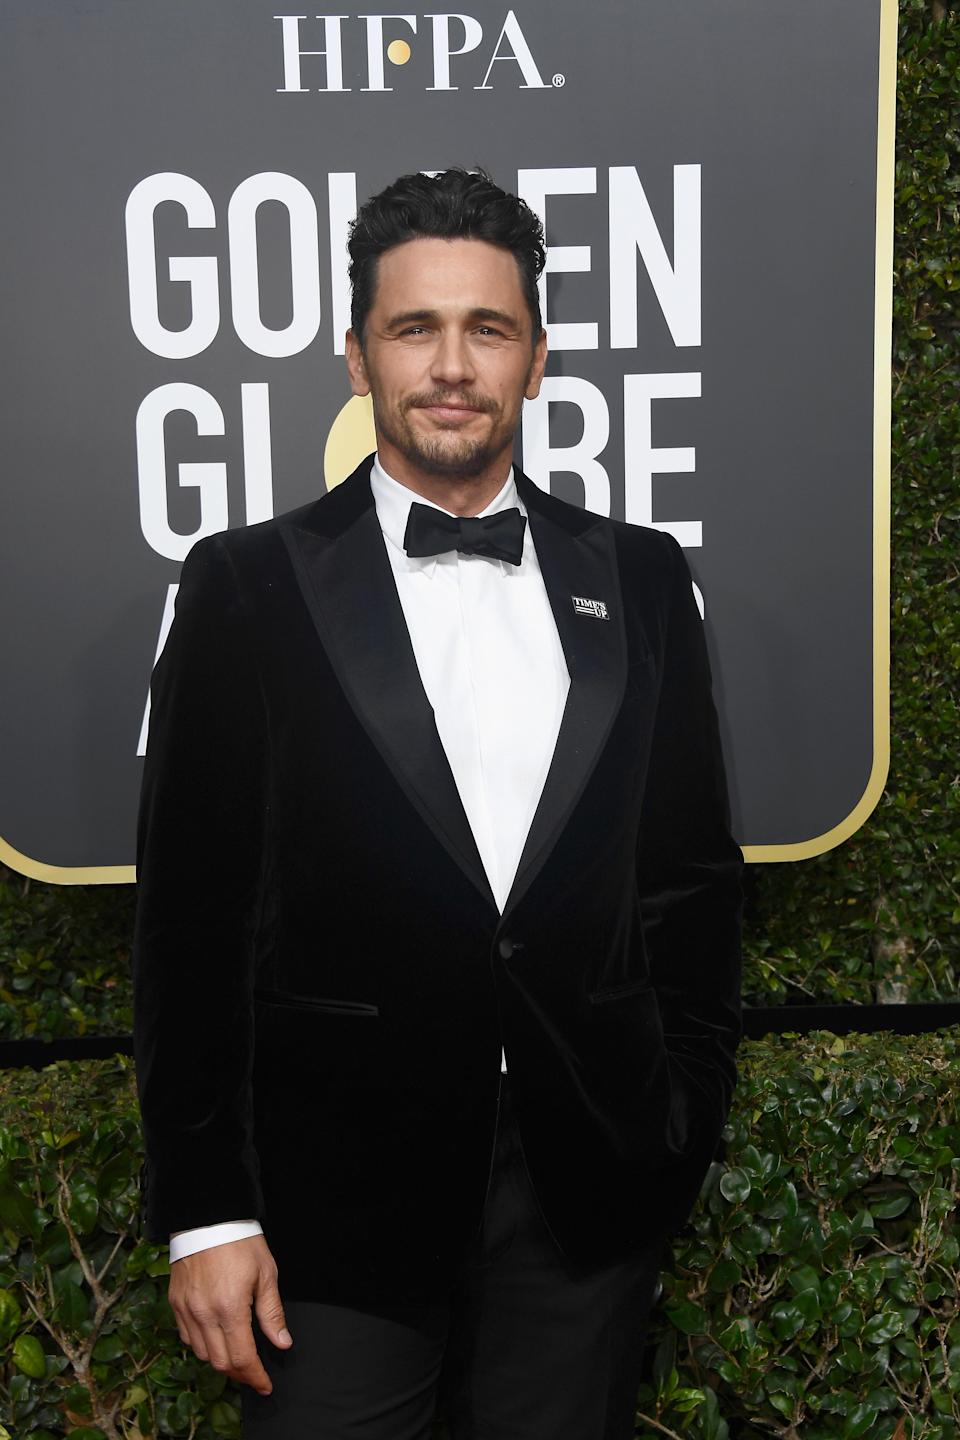 James Franco attends the 75th Annual Golden Globe Awards. (Photo: Getty Images)